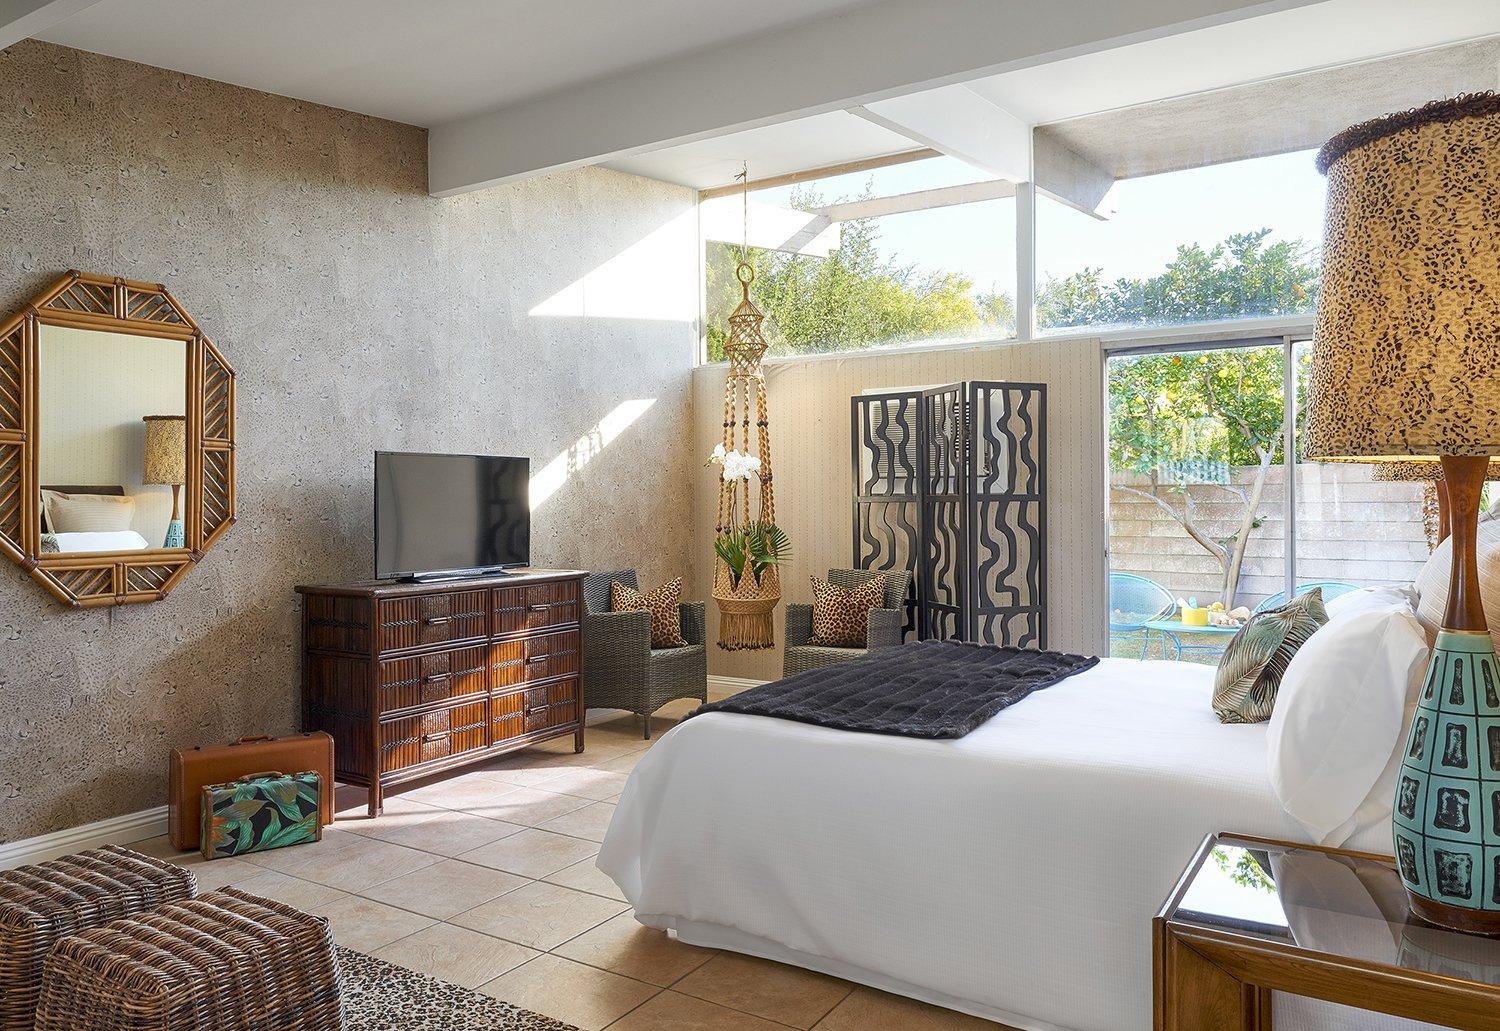 The new hotel's Jungle bedroom, stocked with finds from places like The Estate Sale Company, where it's not unusual to find treasures from the Parker Palm Springs, located just across the street. Other scores came from the now-shuttered Lot 58 auction house. Midcentury Homes by Dwell